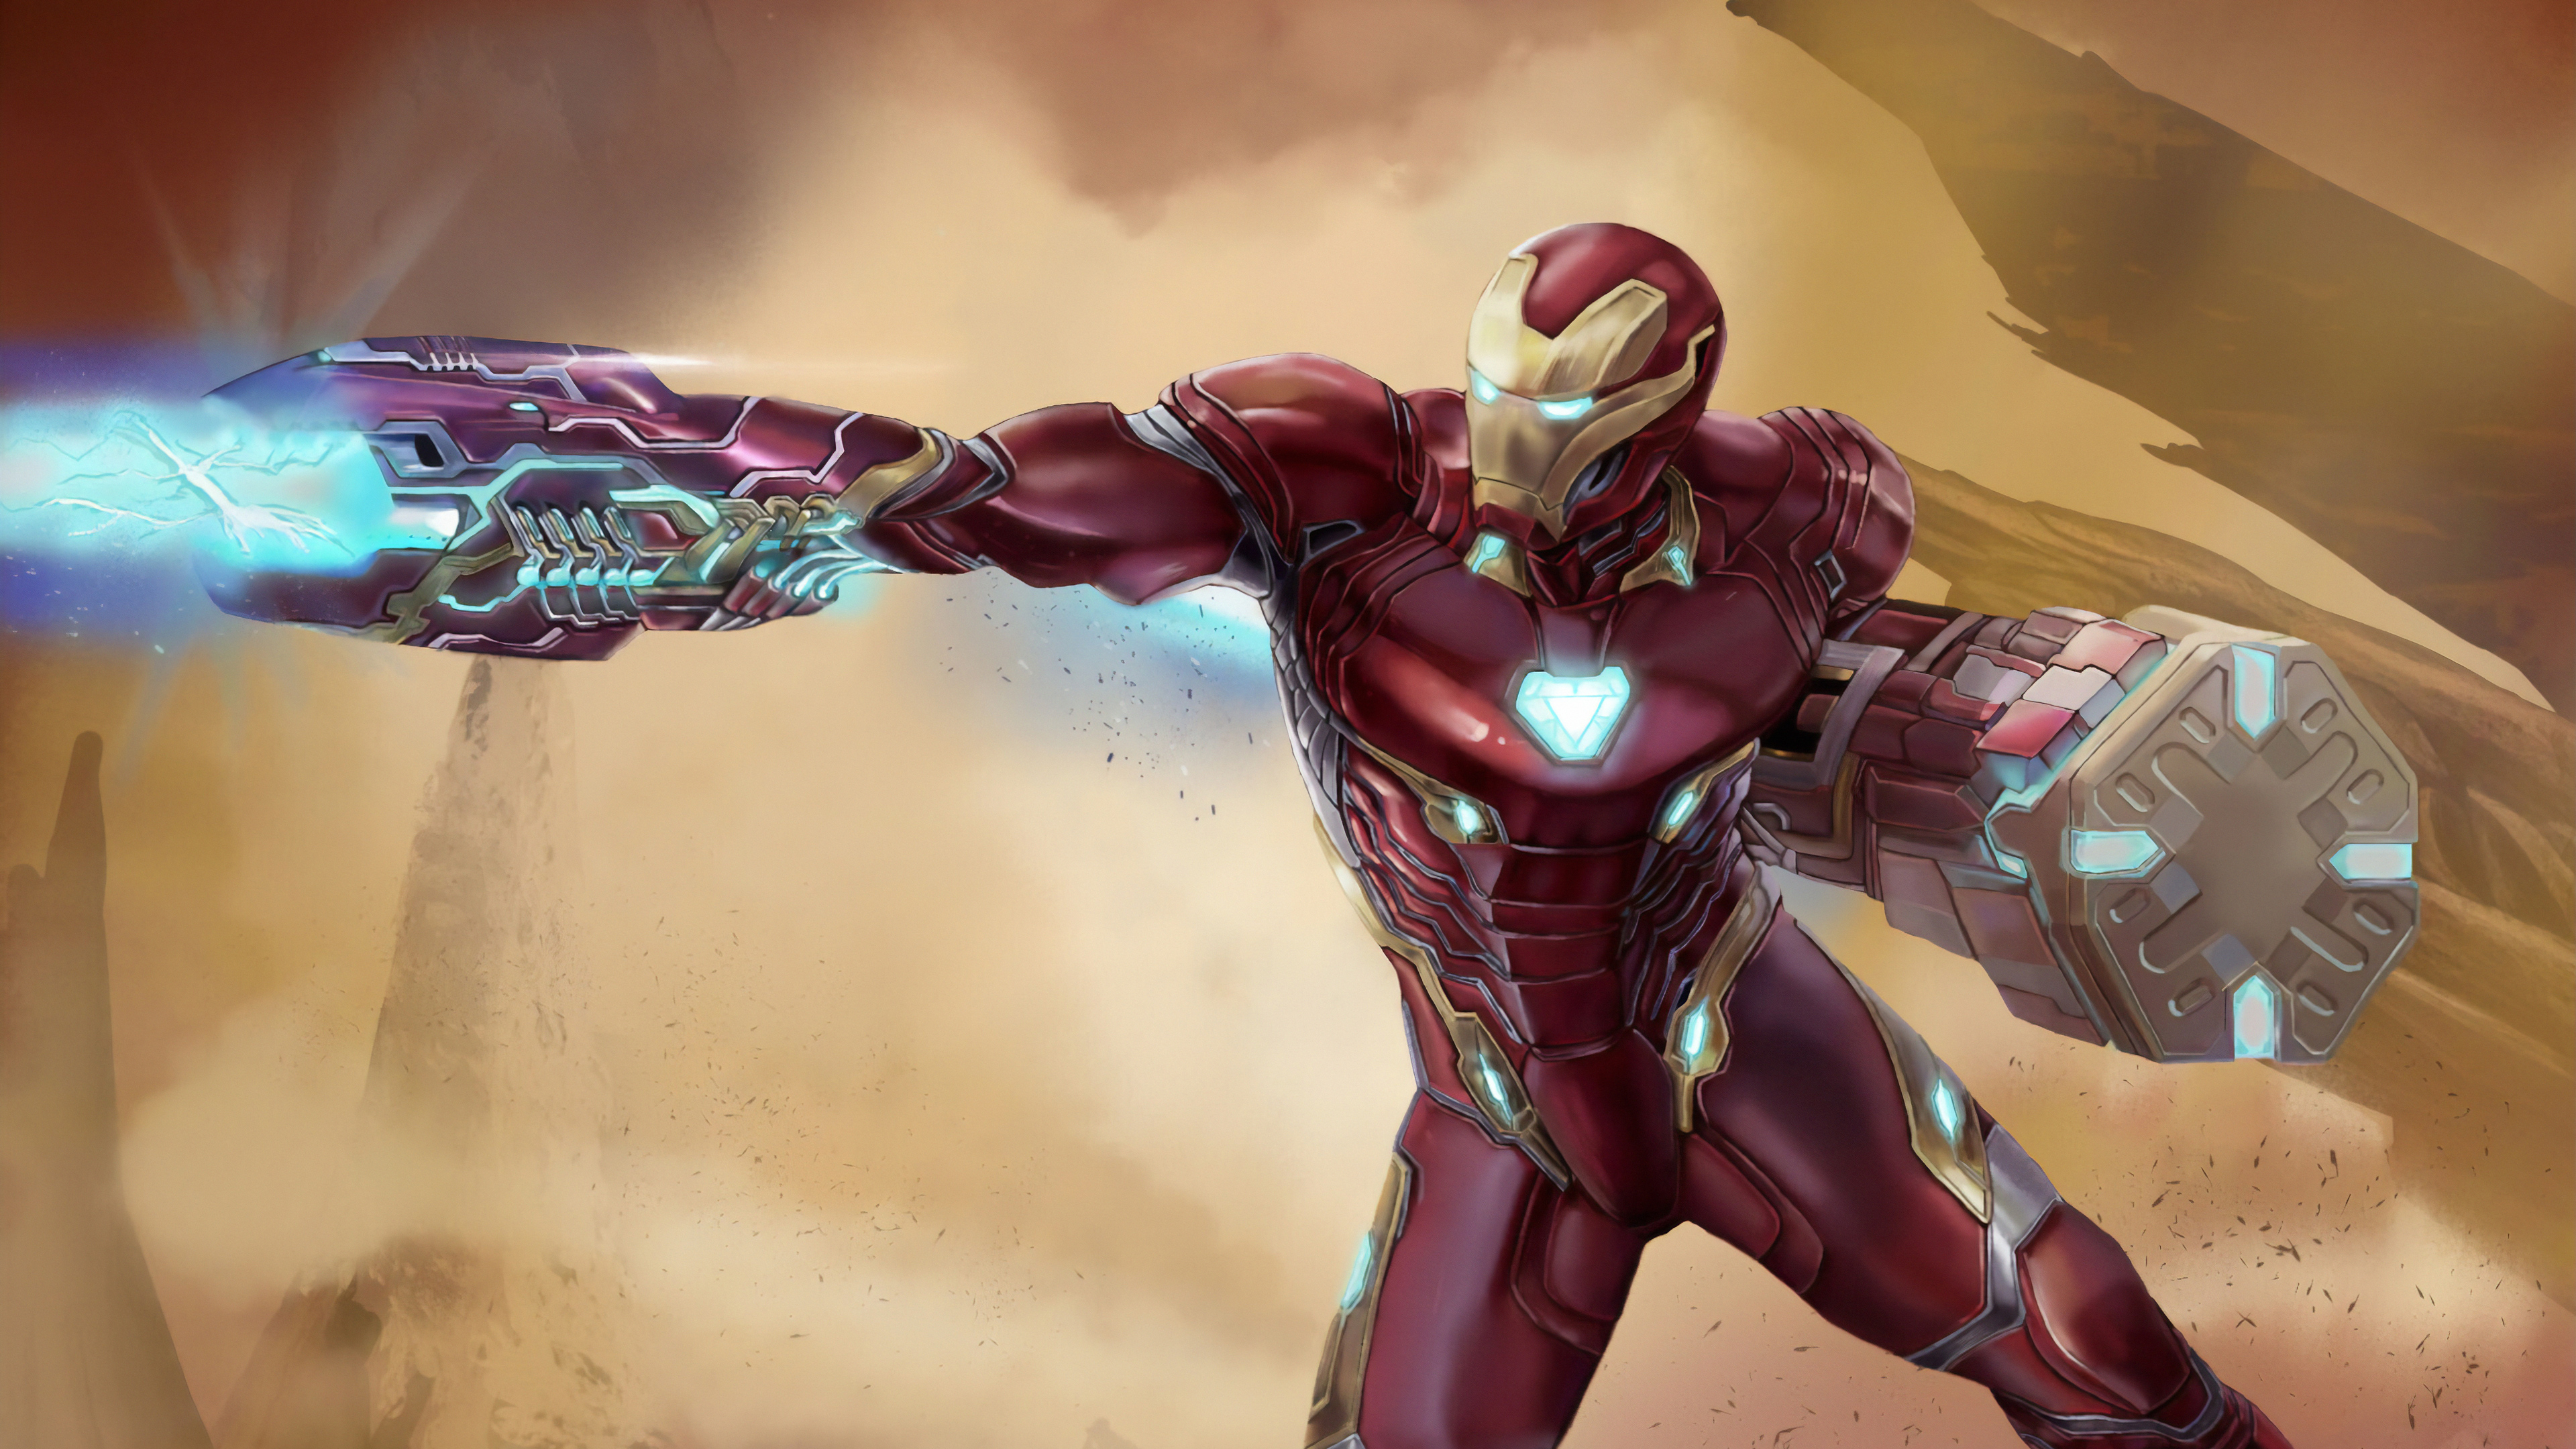 iron man newsuit art 1570918369 - Iron Man Newsuit Art - superheroes wallpapers, iron man wallpapers, hd-wallpapers, digital art wallpapers, artwork wallpapers, artstation wallpapers, 4k-wallpapers